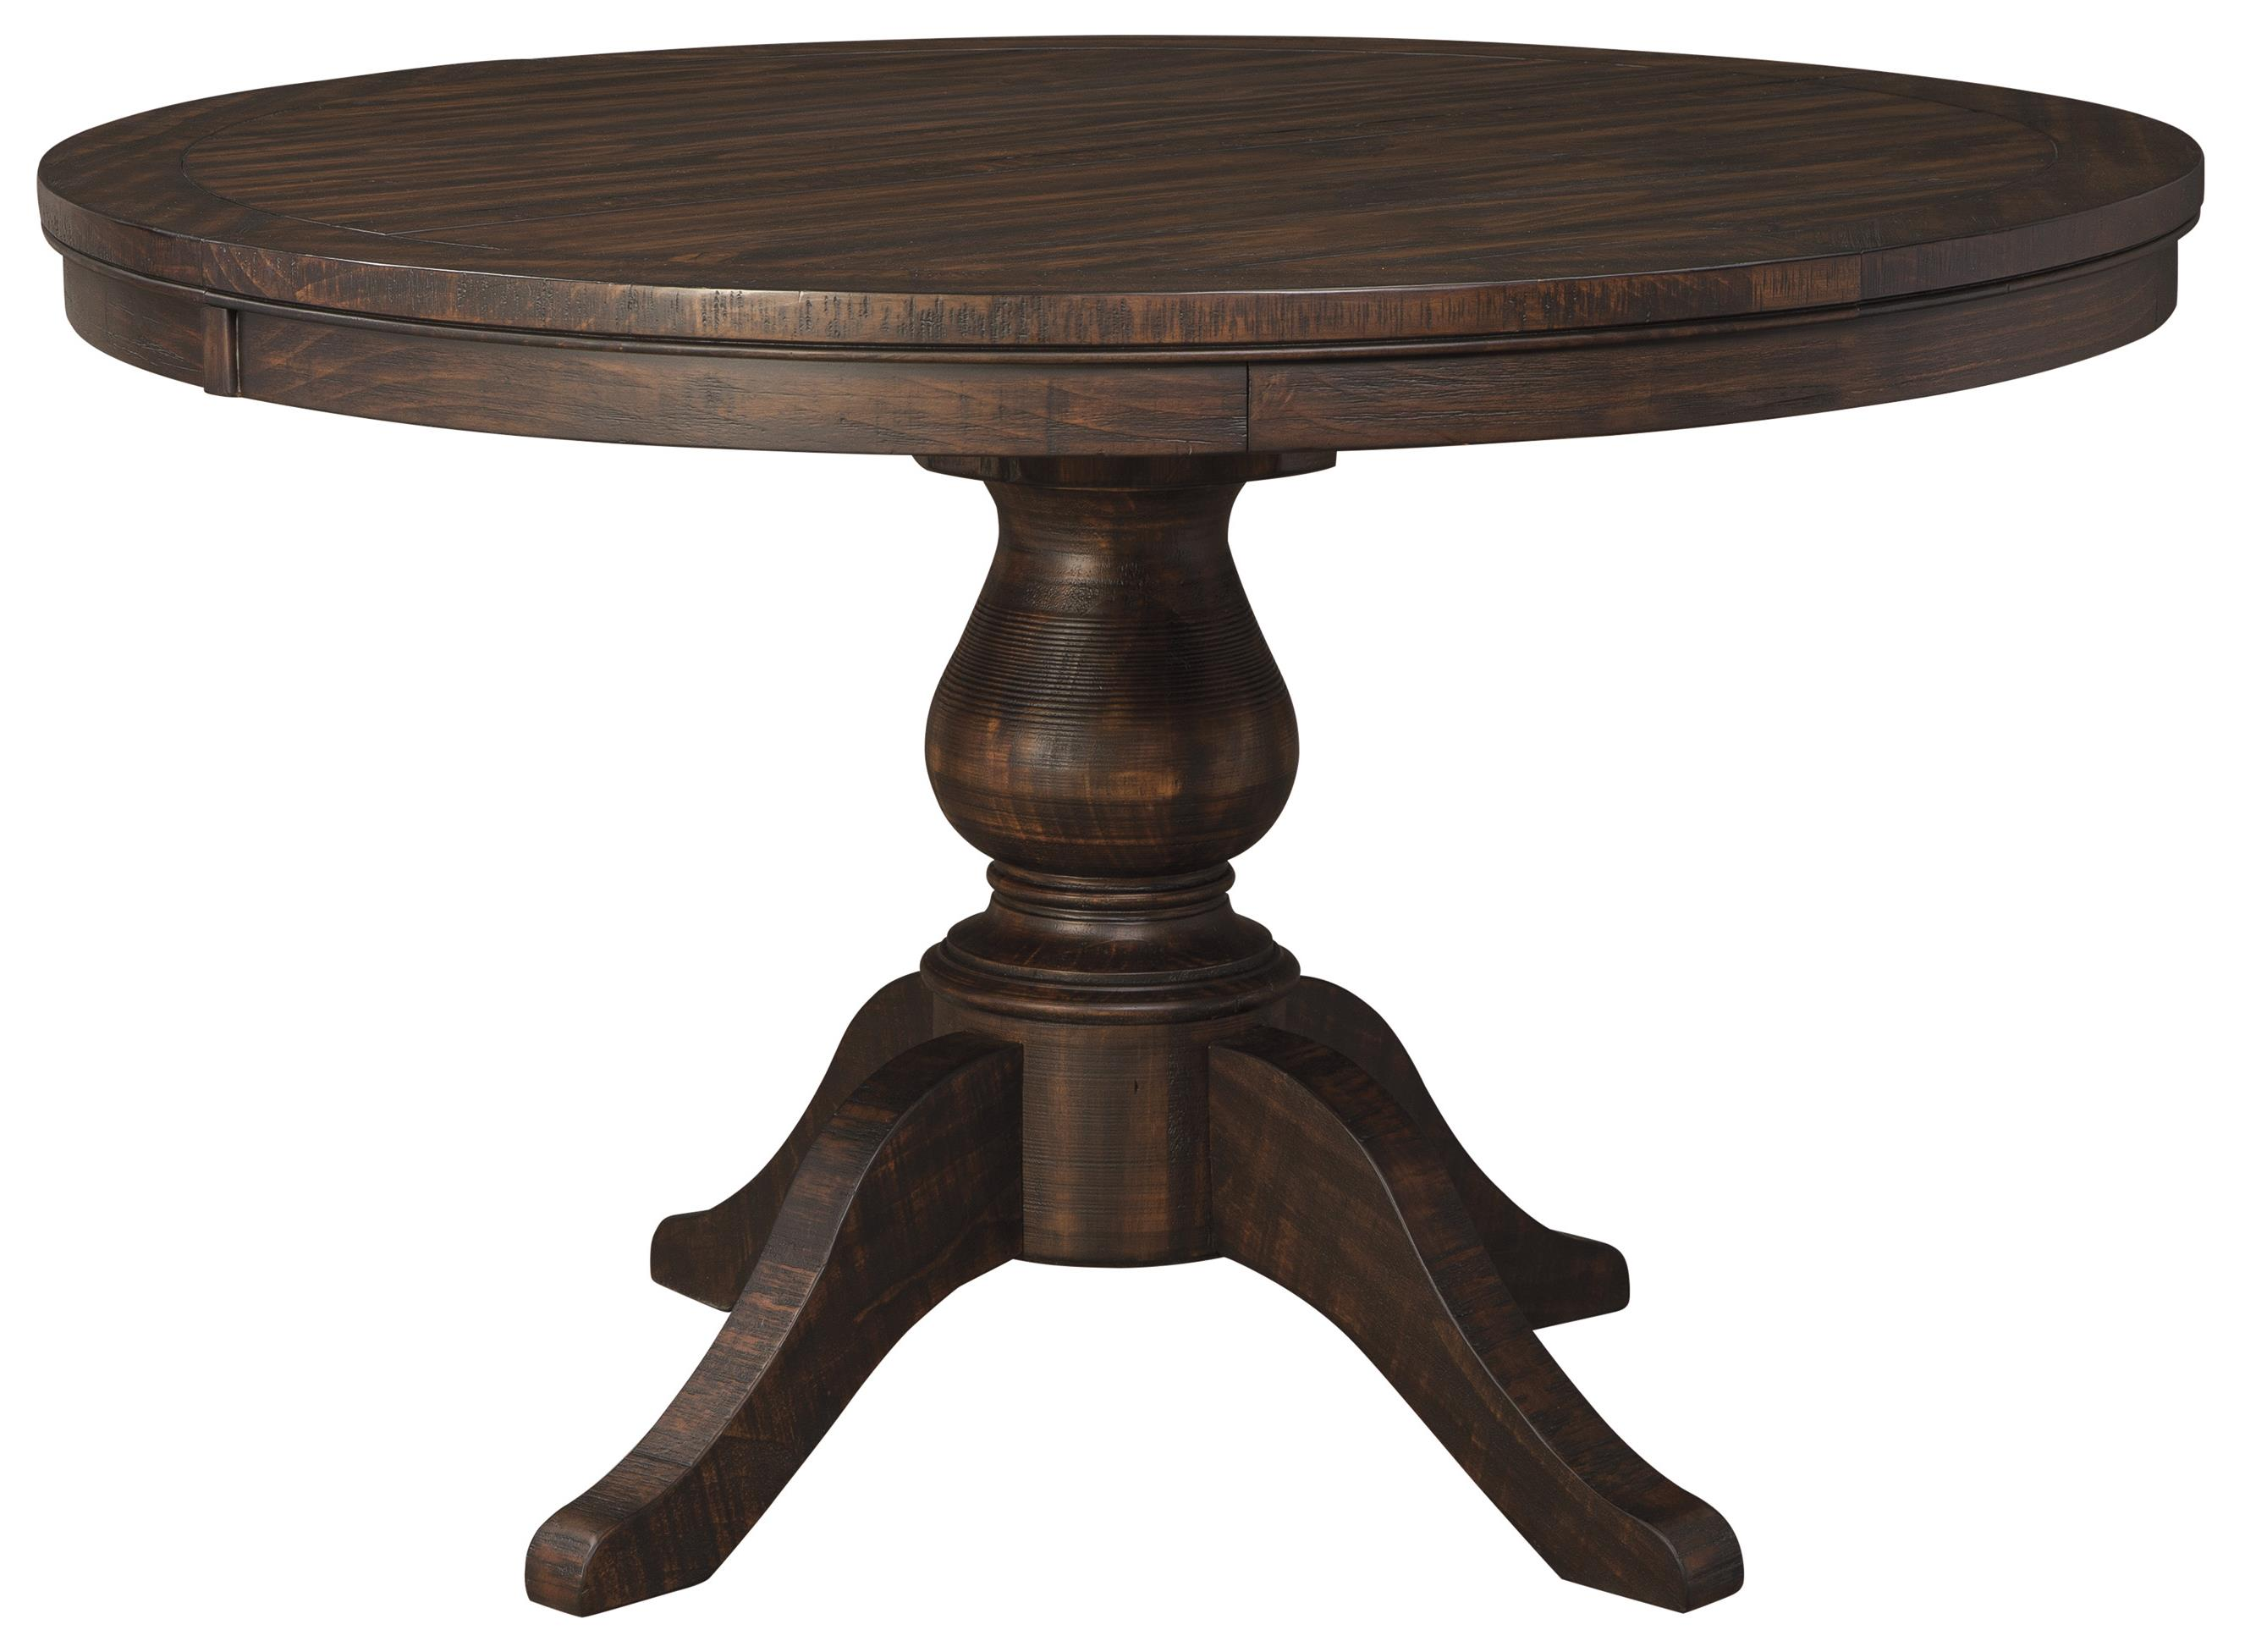 Solid wood pine round dining room pedestal extension table for Round wood dining room table